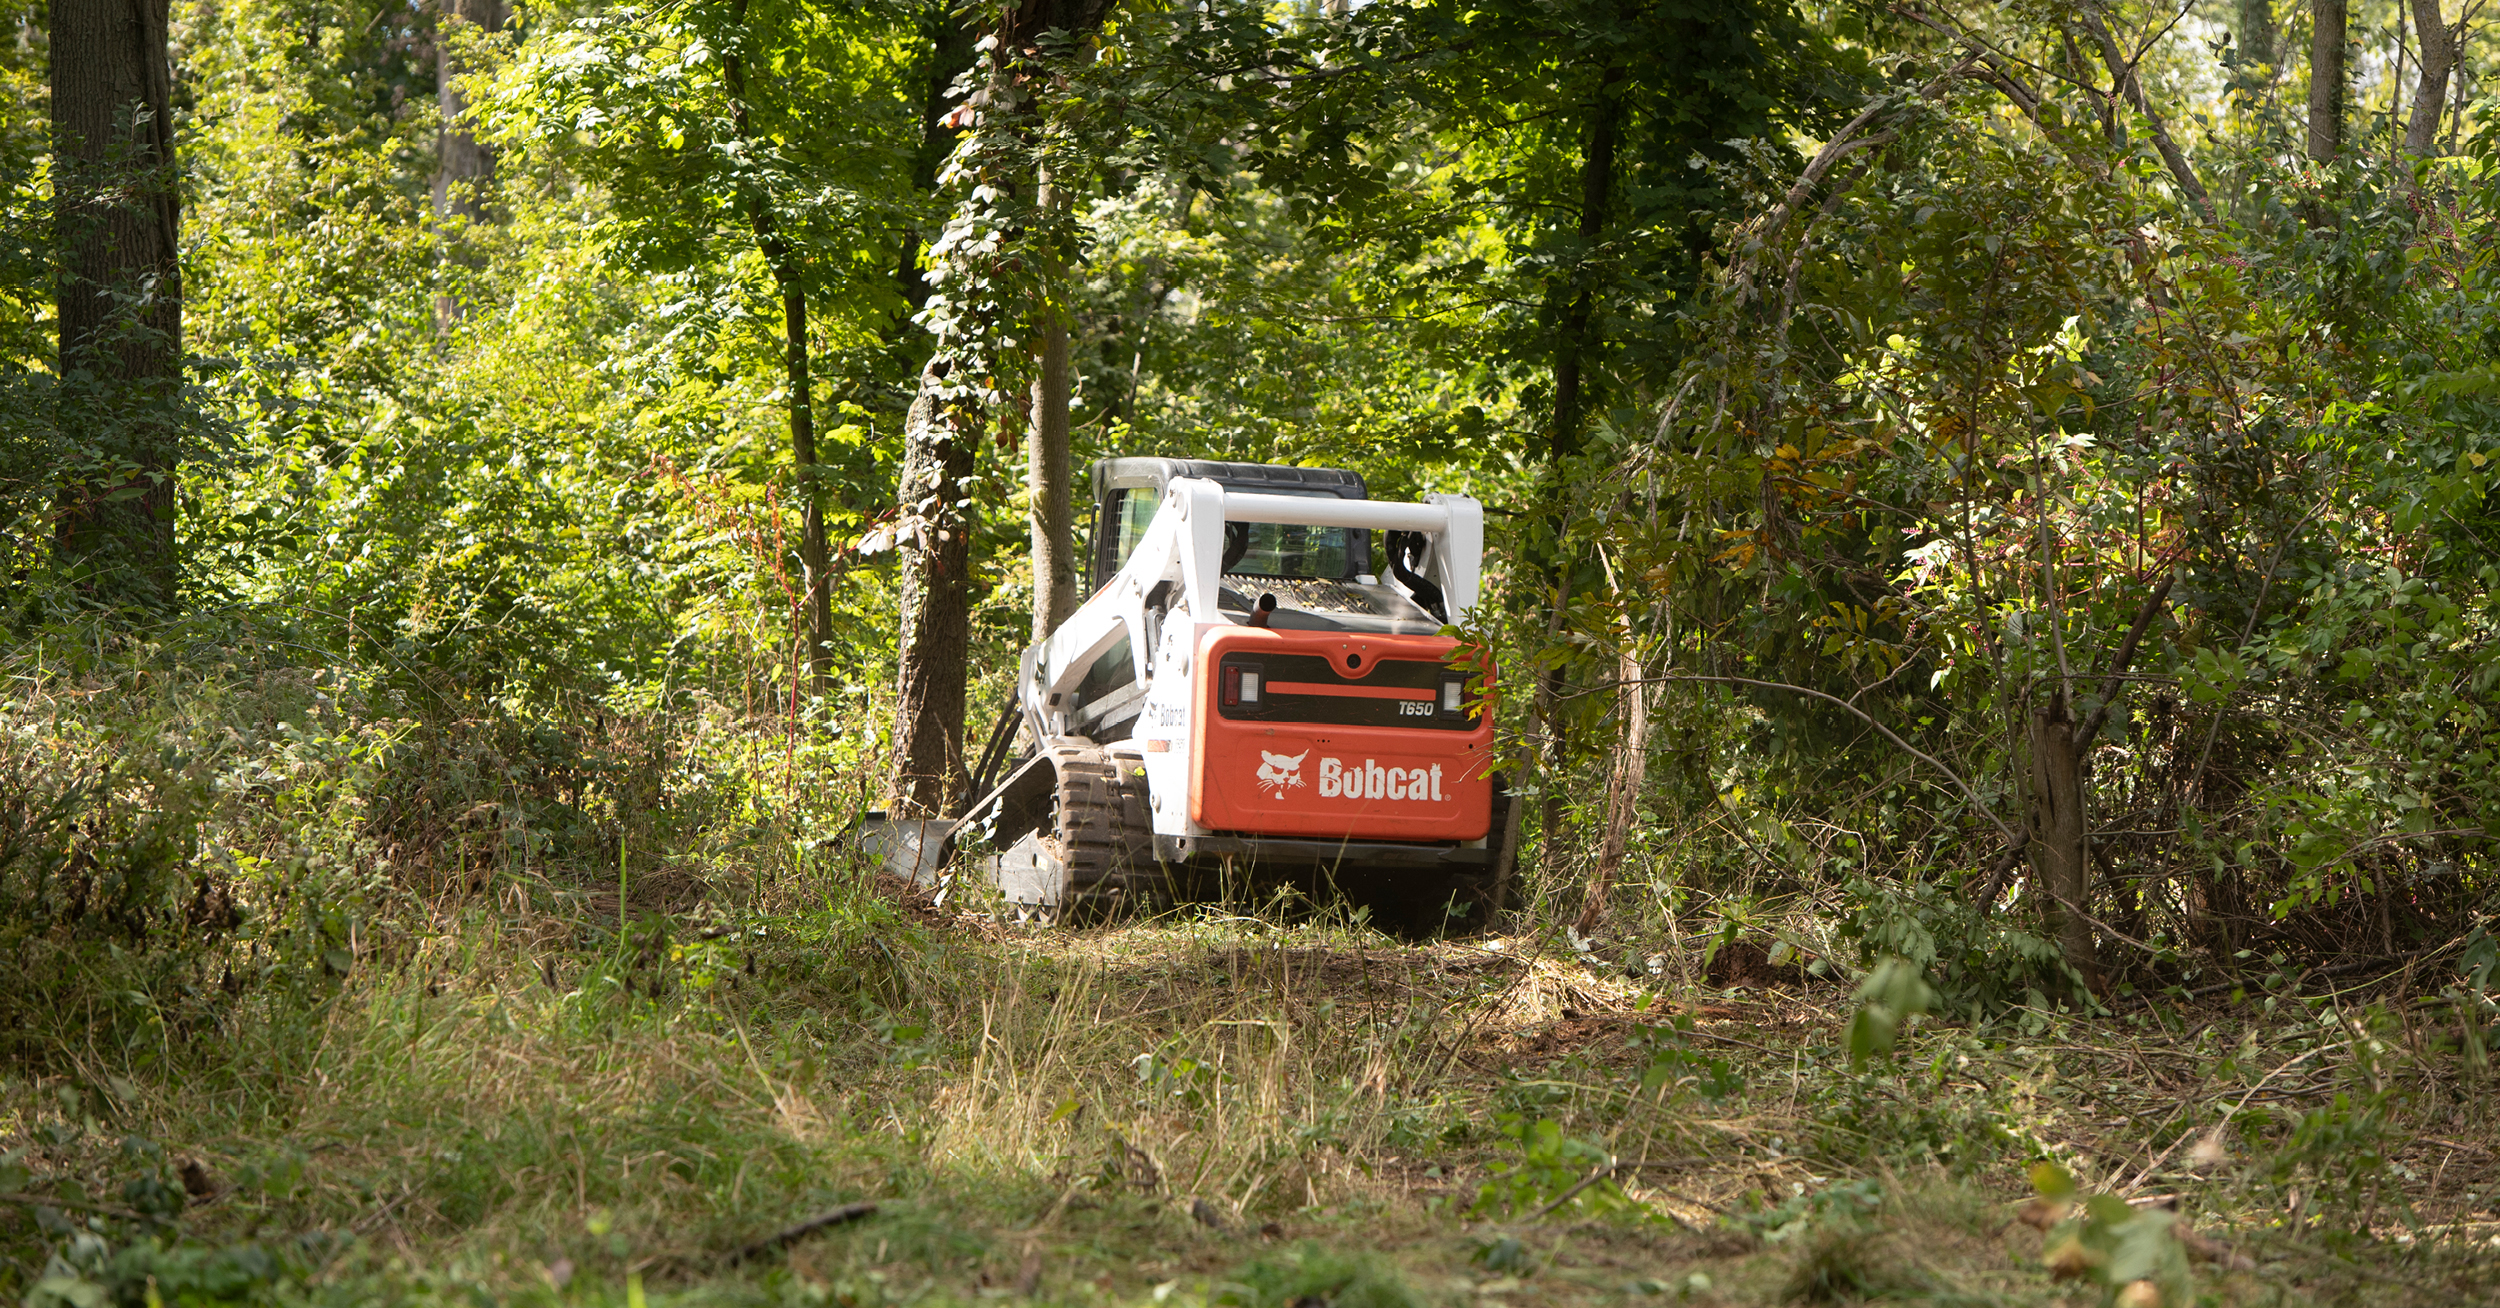 Bobcat T650 compact track loader moving through a wooded area.